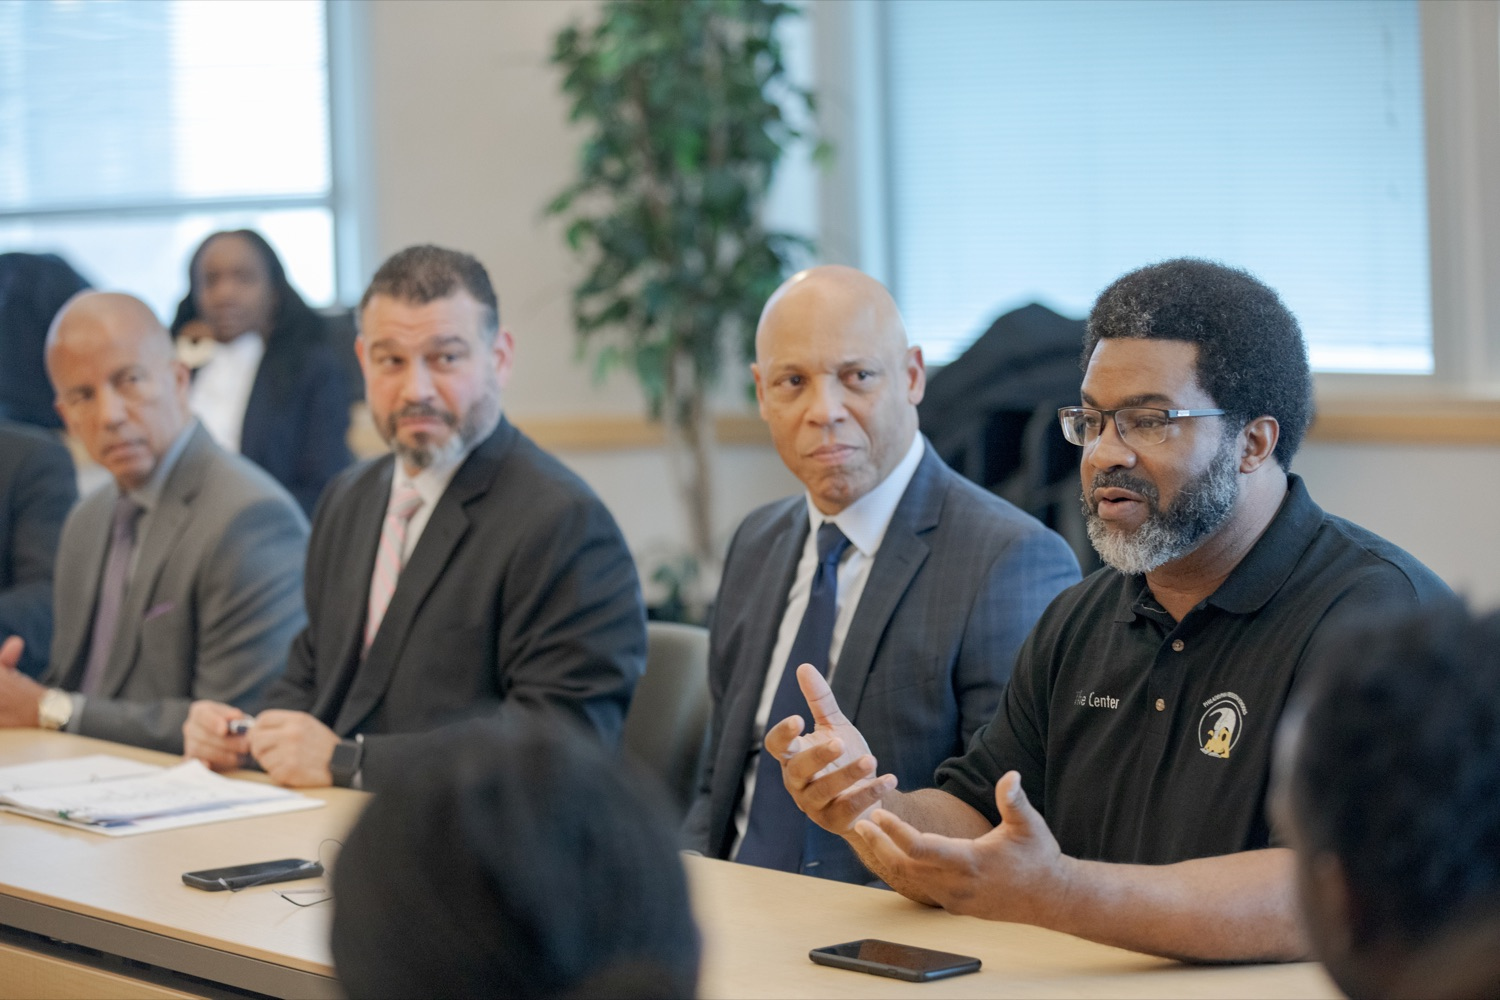 "<a href=""http://filesource.abacast.com/commonwealthofpa/photo/17592_EDU_Aspiring_NK_018.JPG"" target=""_blank"">⇣ Download Photo<br></a>Sharif El-Mekki, founder of the Center for Black Educator Development, right, speaks before a press conference, announcing the School District of Philadelphia's new pilot program, Aspiring to Educate, that aims to cultivate and diversify the citys educator pool, inside Community College of Philadelphia's Center for Business and Industry on Wednesday, November 20, 2019."